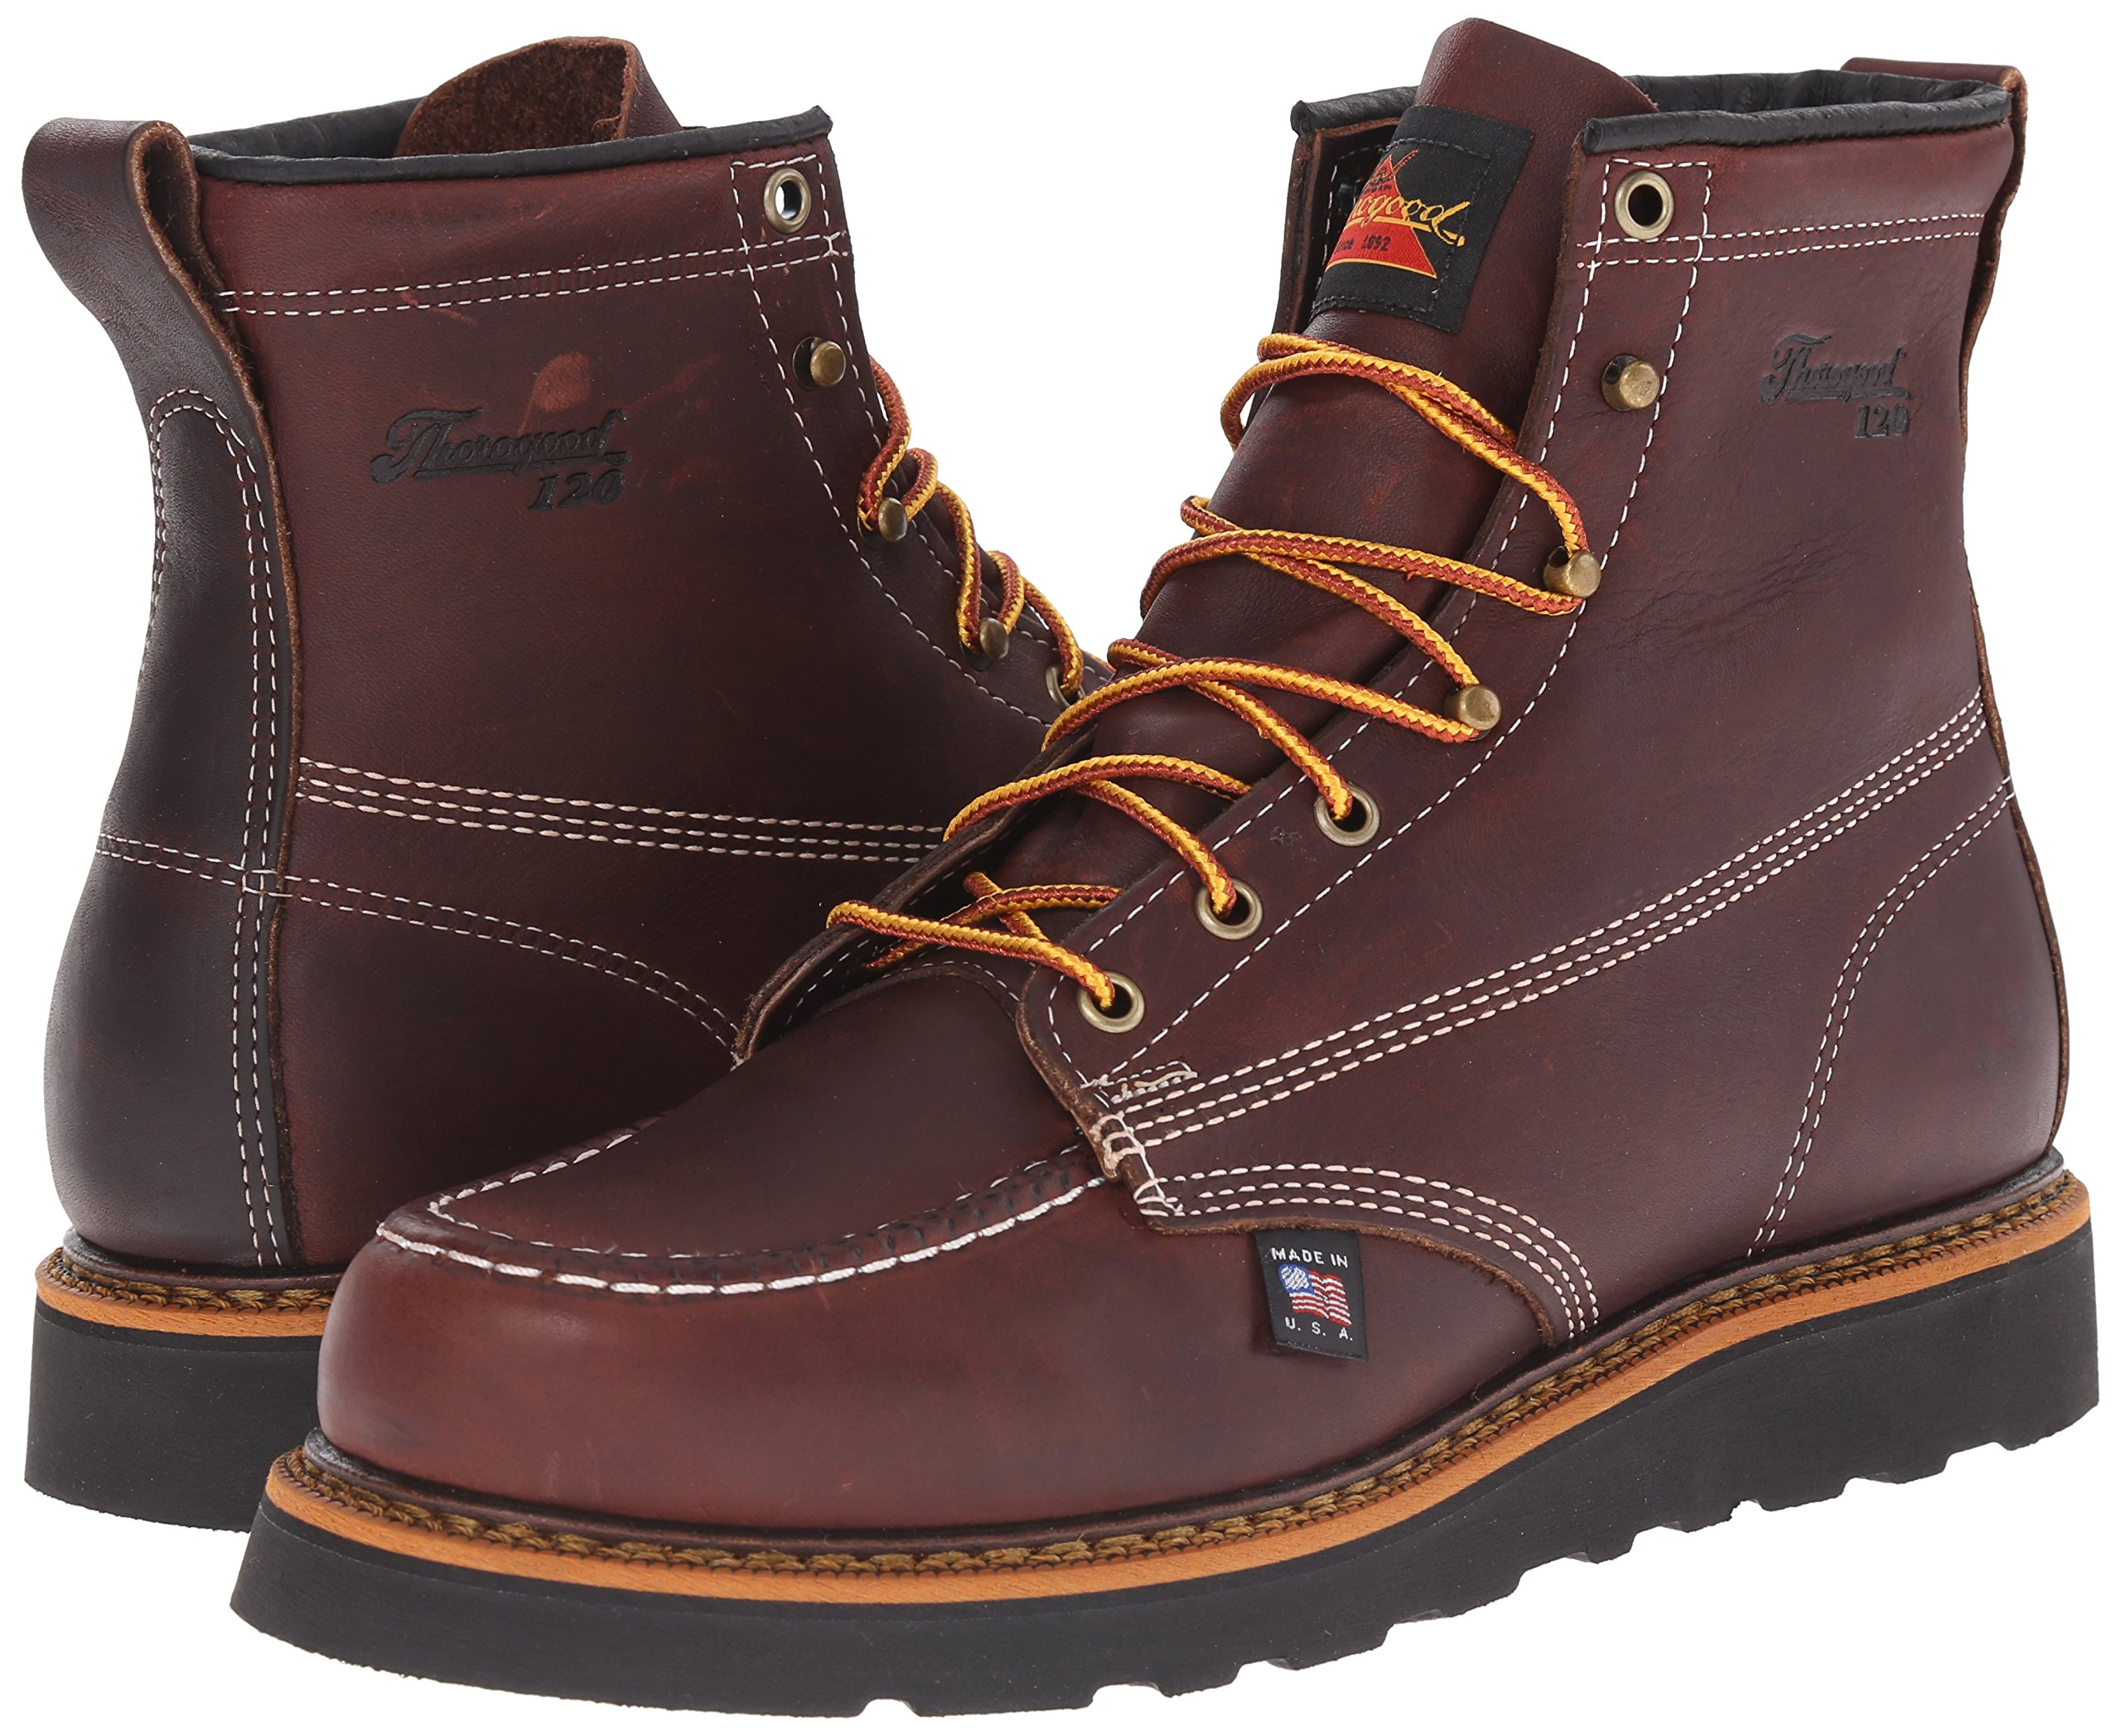 Thorogood-American-Heritage-Men-039-s-6-034-Moc-Toe-Max-Wedge-Non-Safety-Boots thumbnail 15